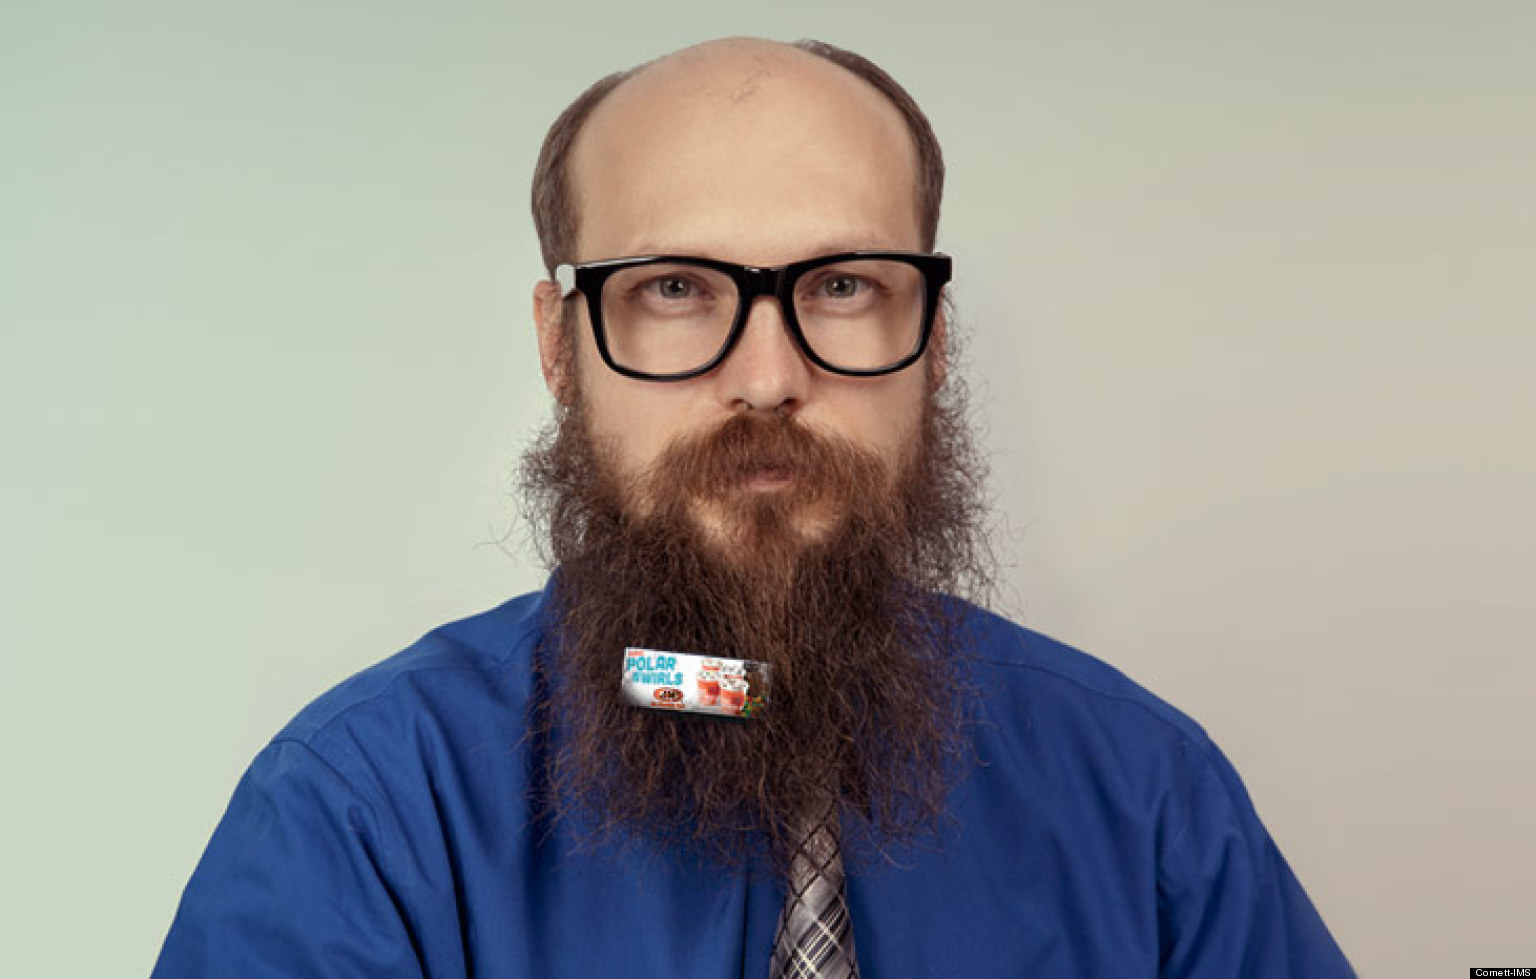 Beardvertising Campaign Aims To Get Whiskered Hipsters